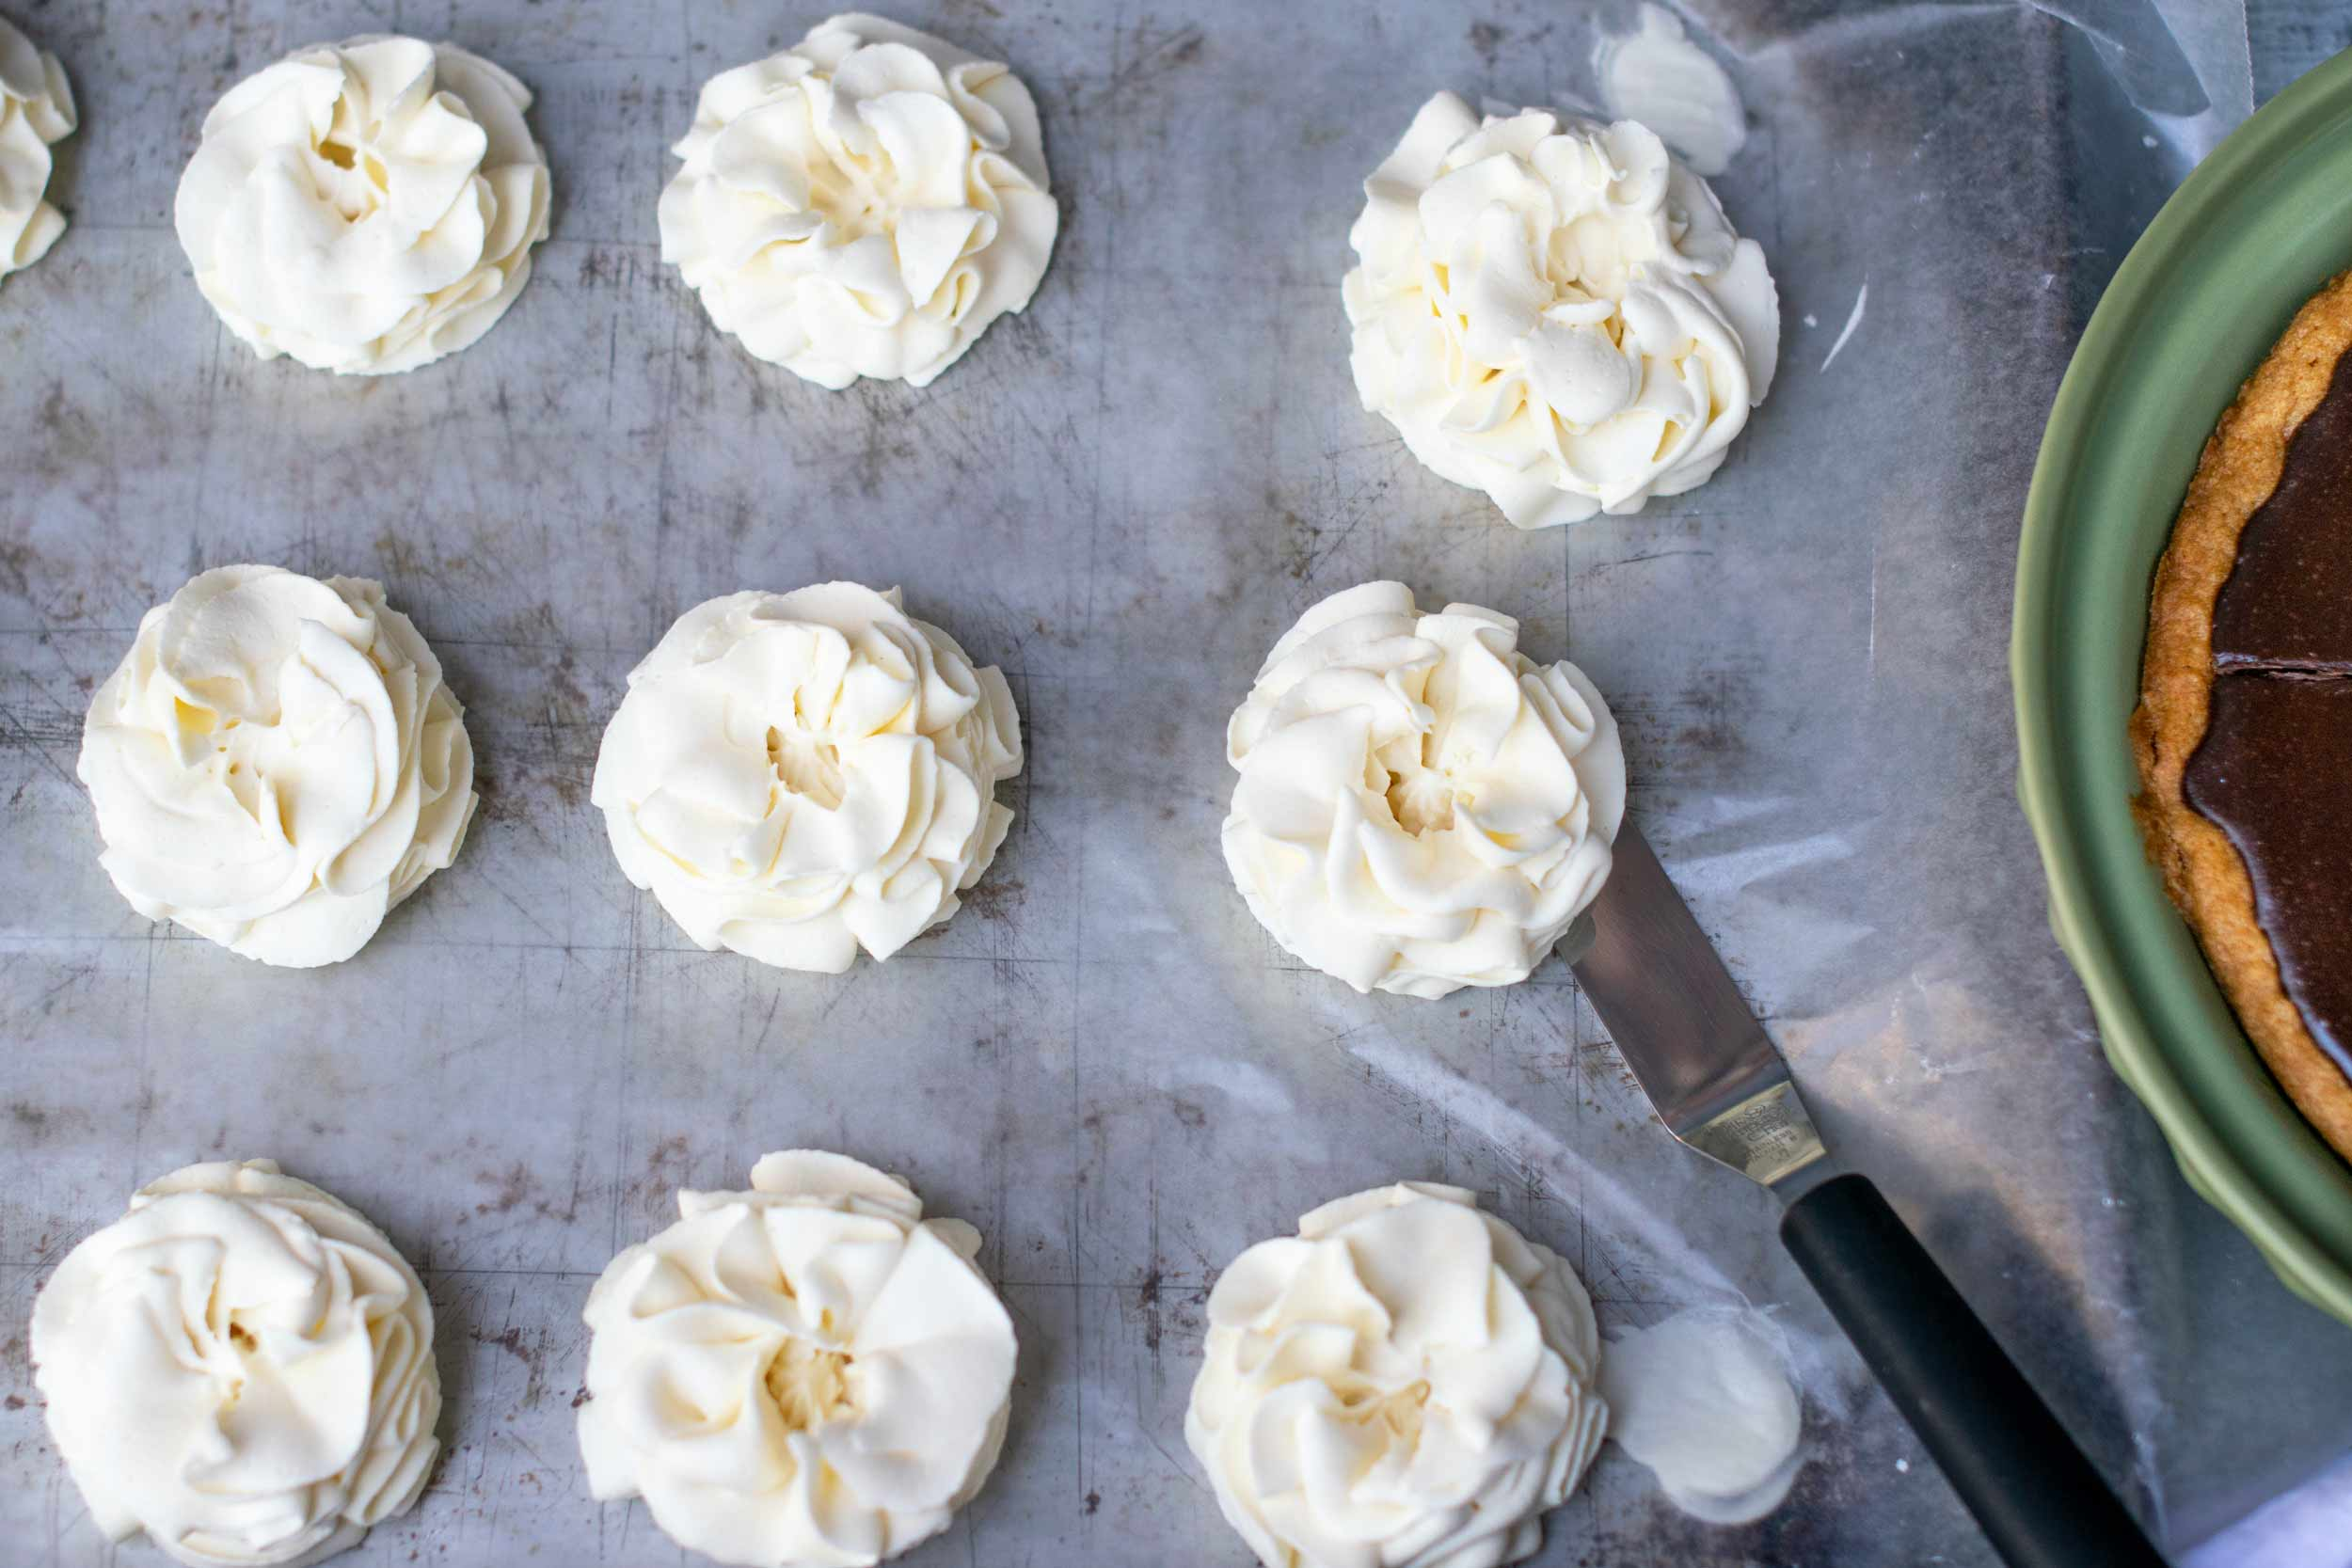 Sturdy Whipped Cream Frosting Major Hoff Takes A Wife Family Recipes Travel Inspiration